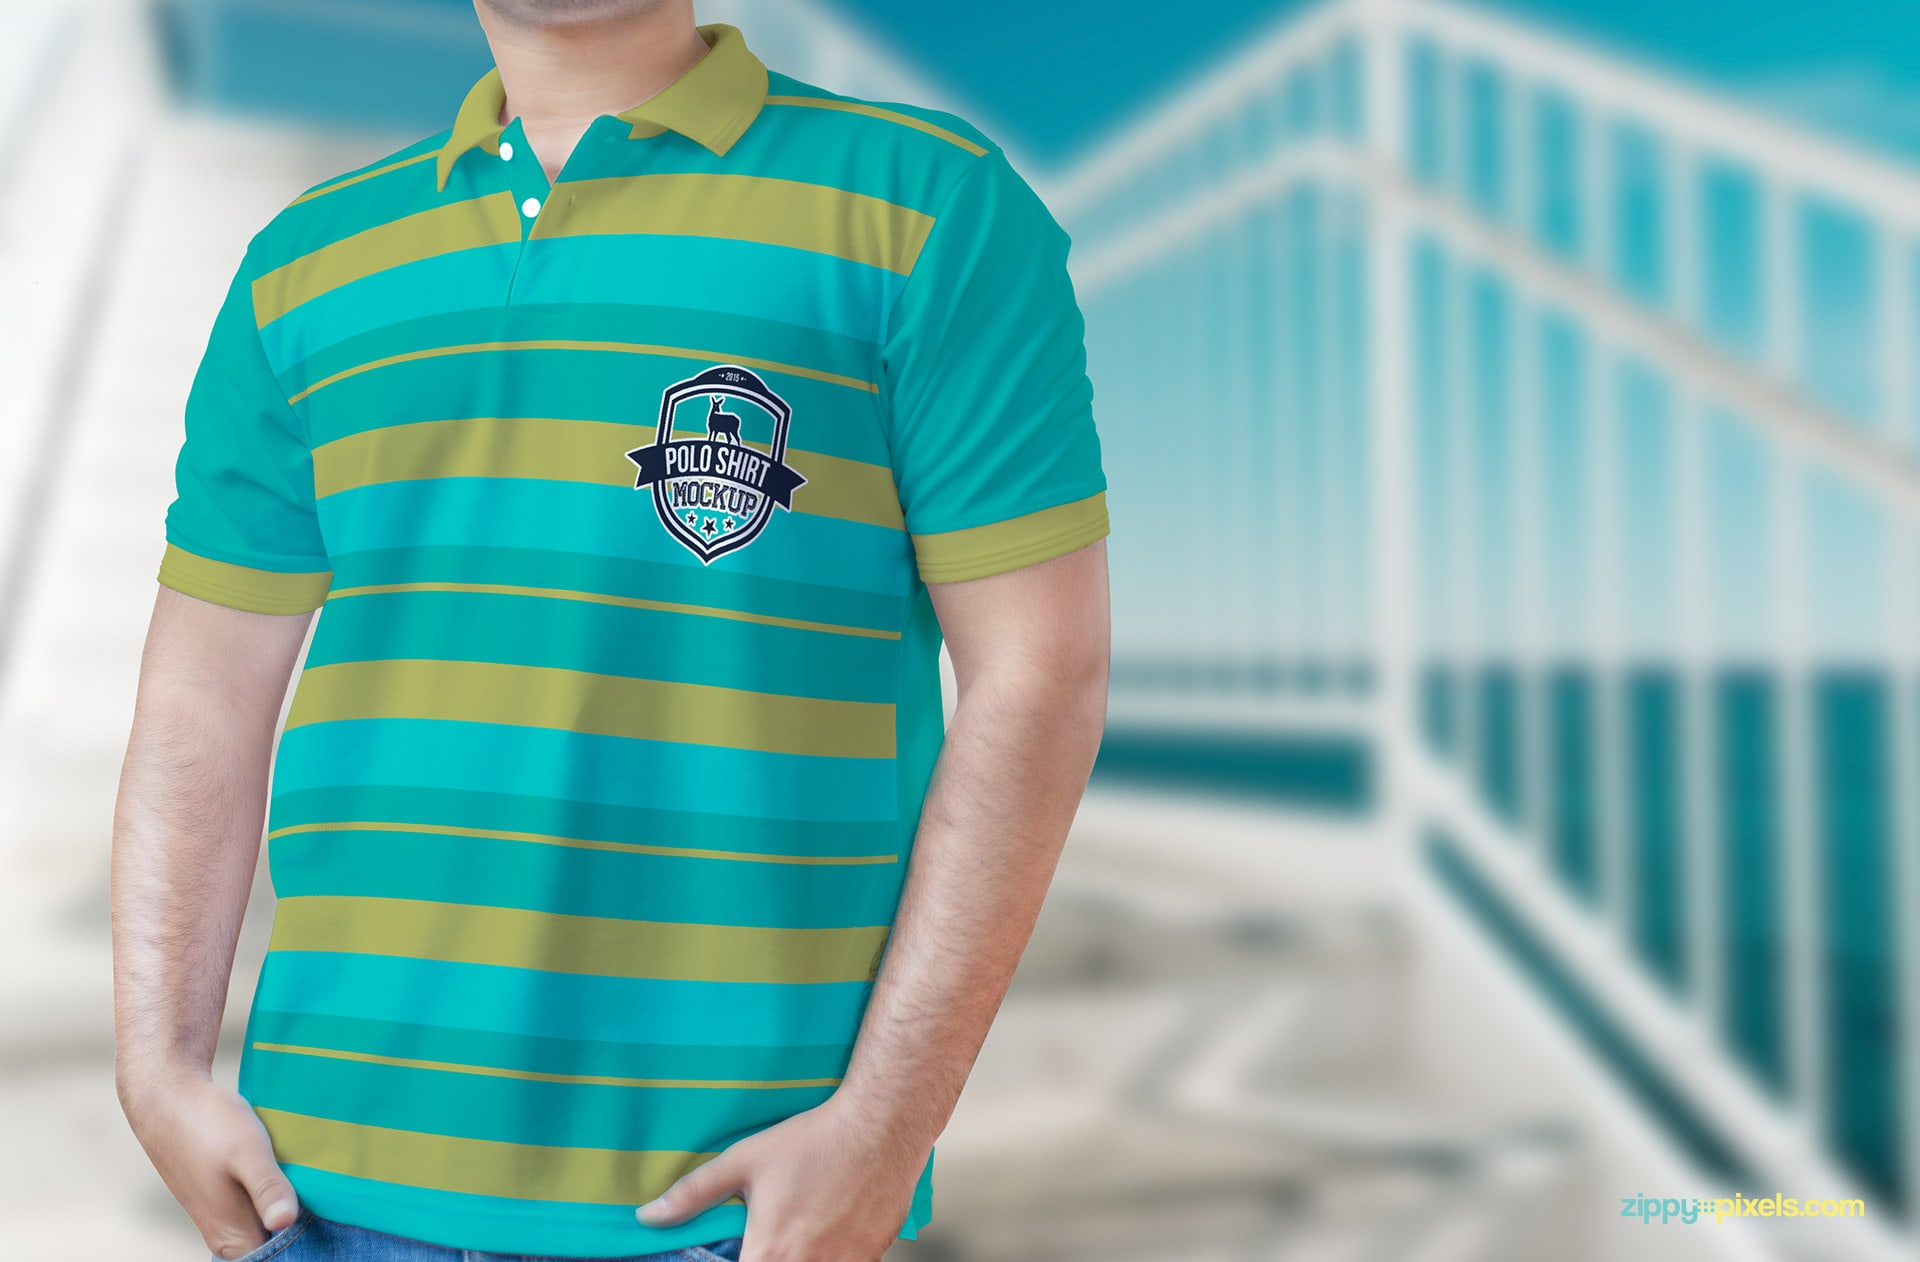 True to life depiction of a polo shirt mockup